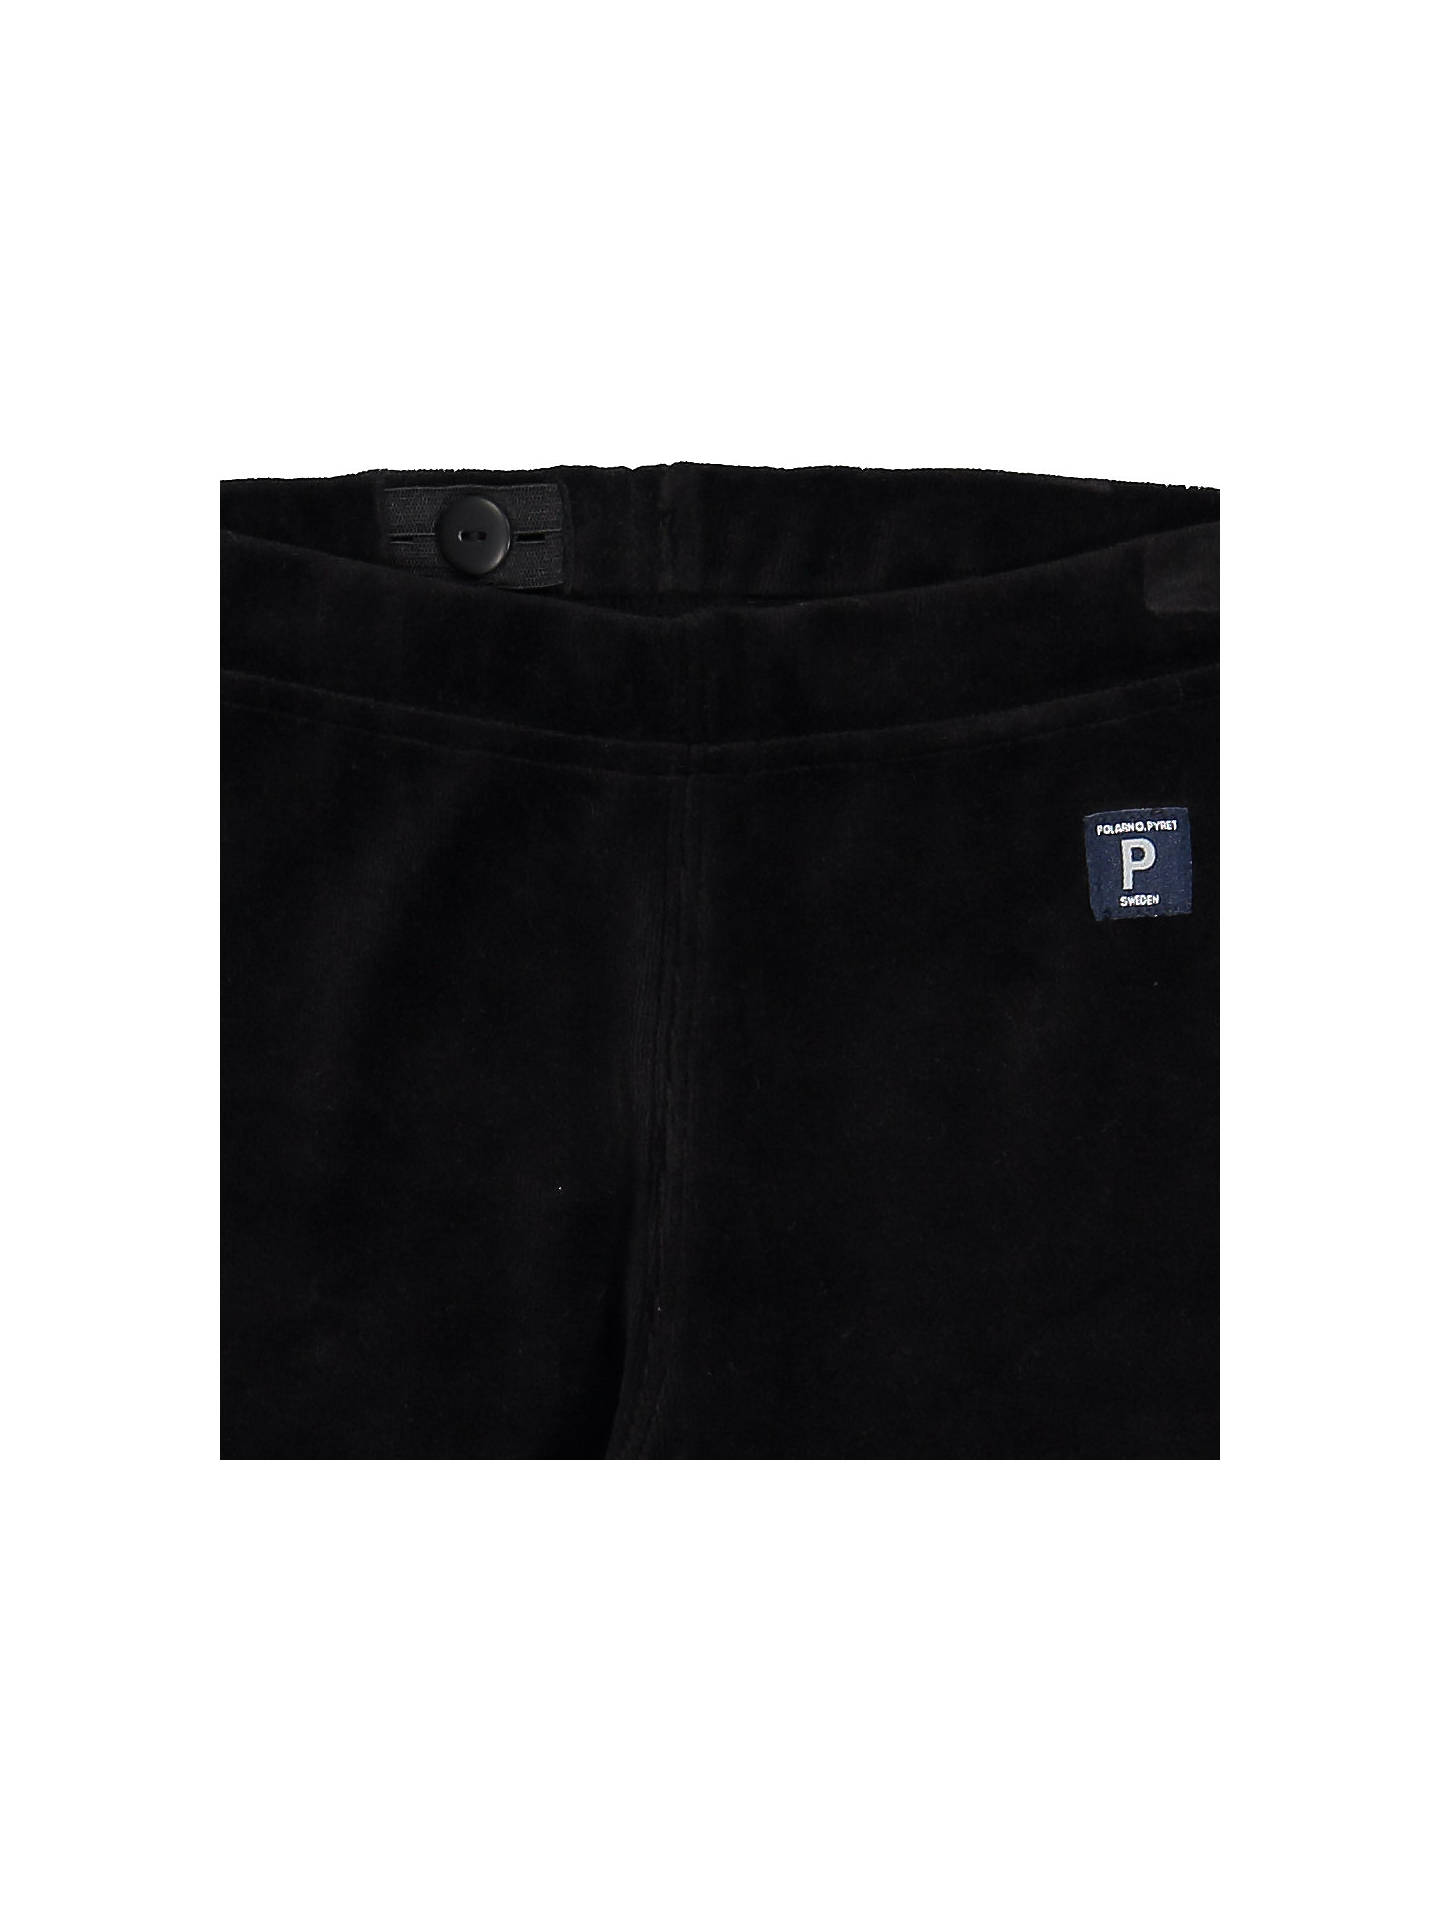 BuyPolarn O. Pyret Children's Deer Velour Trousers, Black, 2-3 years Online at johnlewis.com